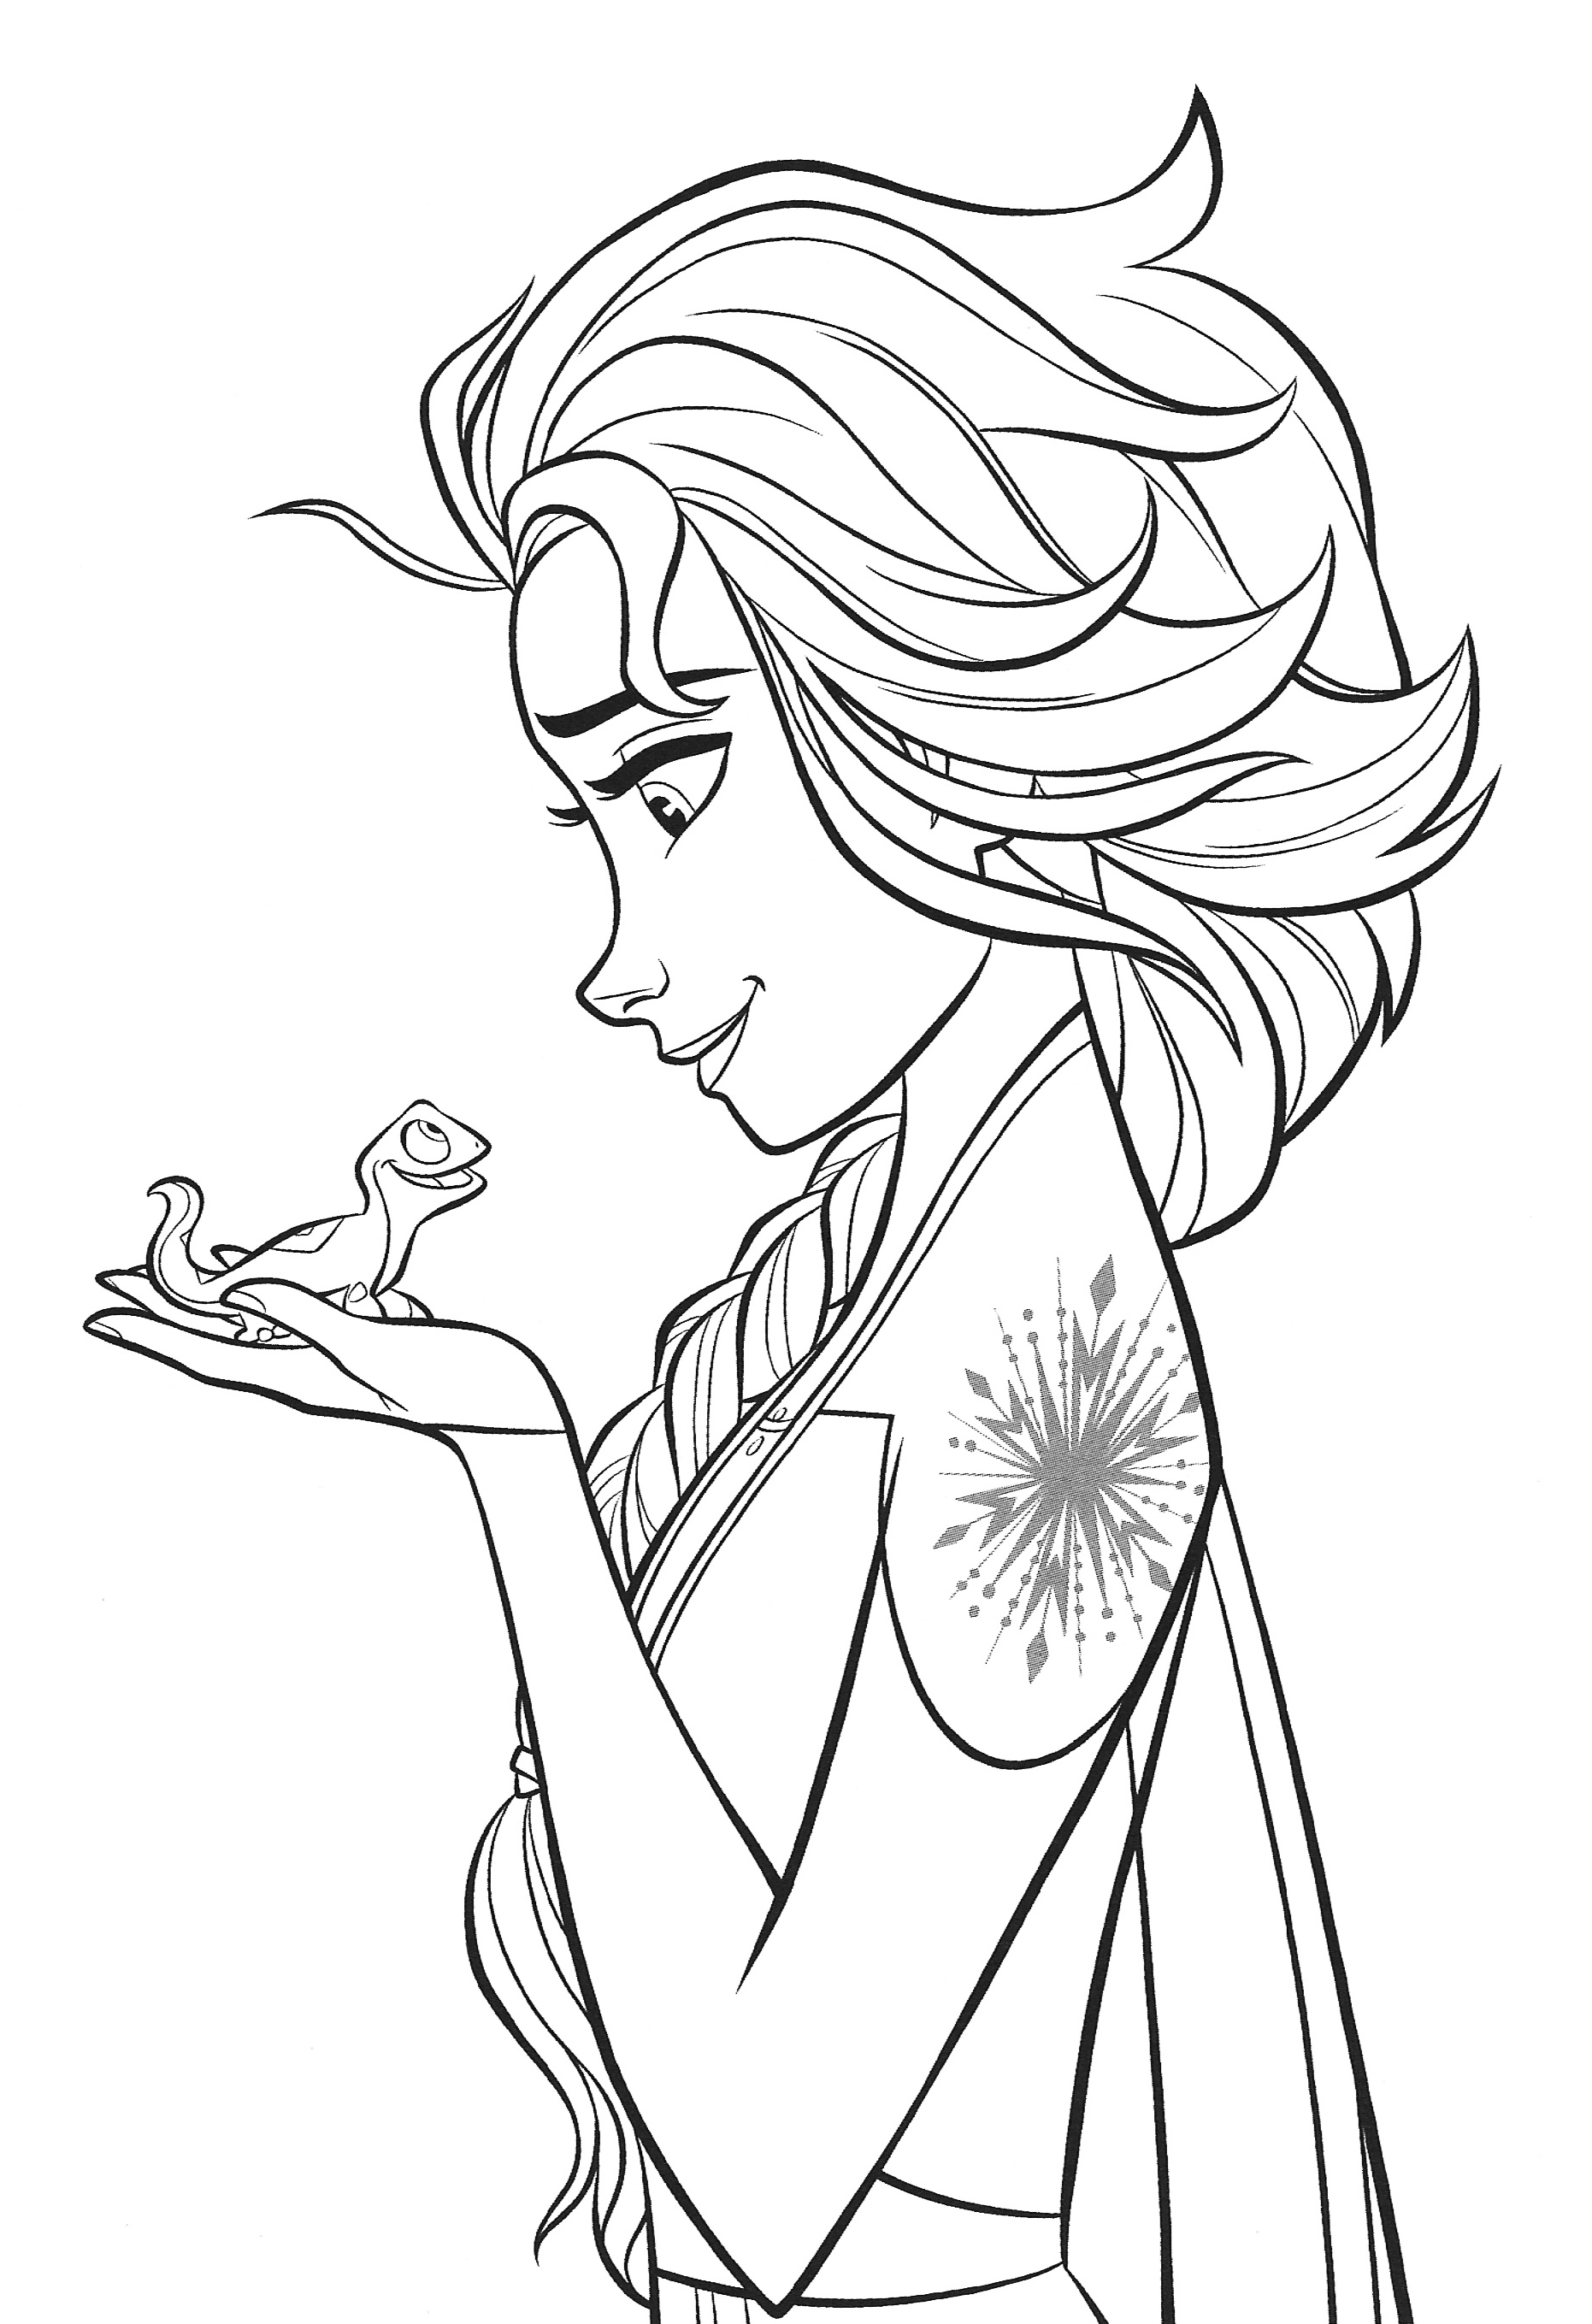 frozen colouring pages new frozen 2 coloring pages with elsa youloveitcom pages frozen colouring